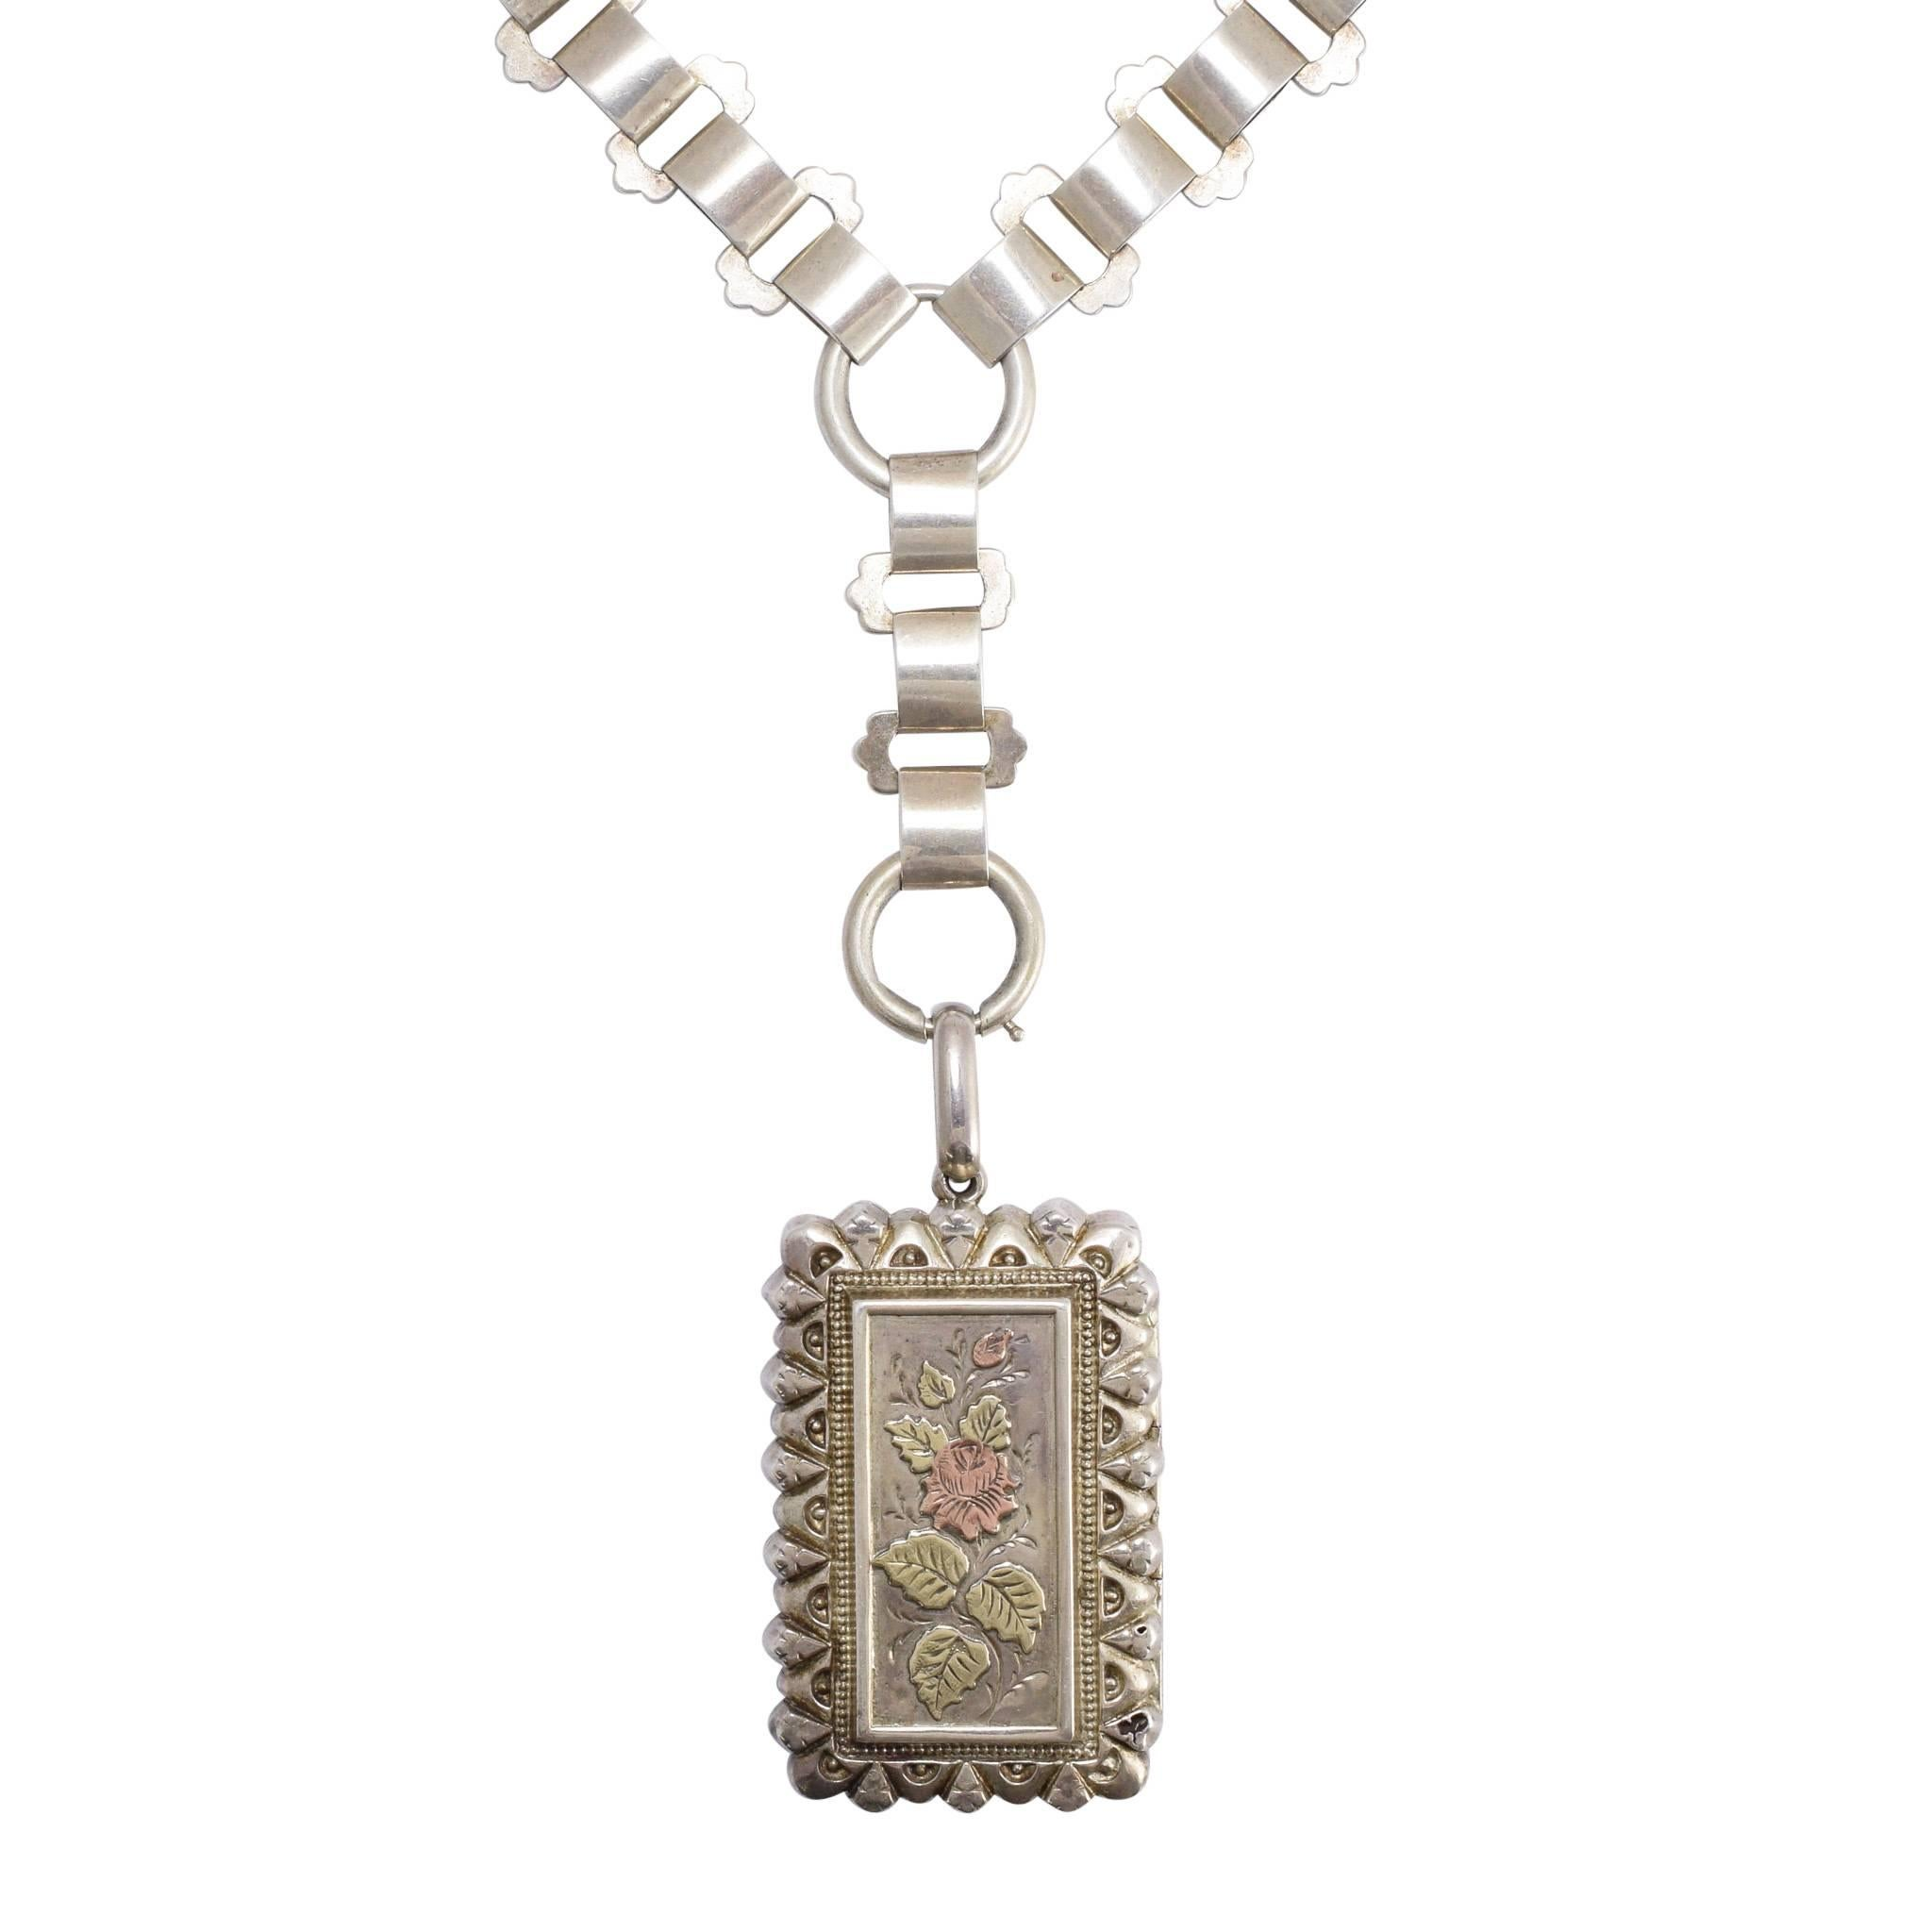 inlaid lockets memorial pendant shop gem and crystarosin silver sterling pendants disc